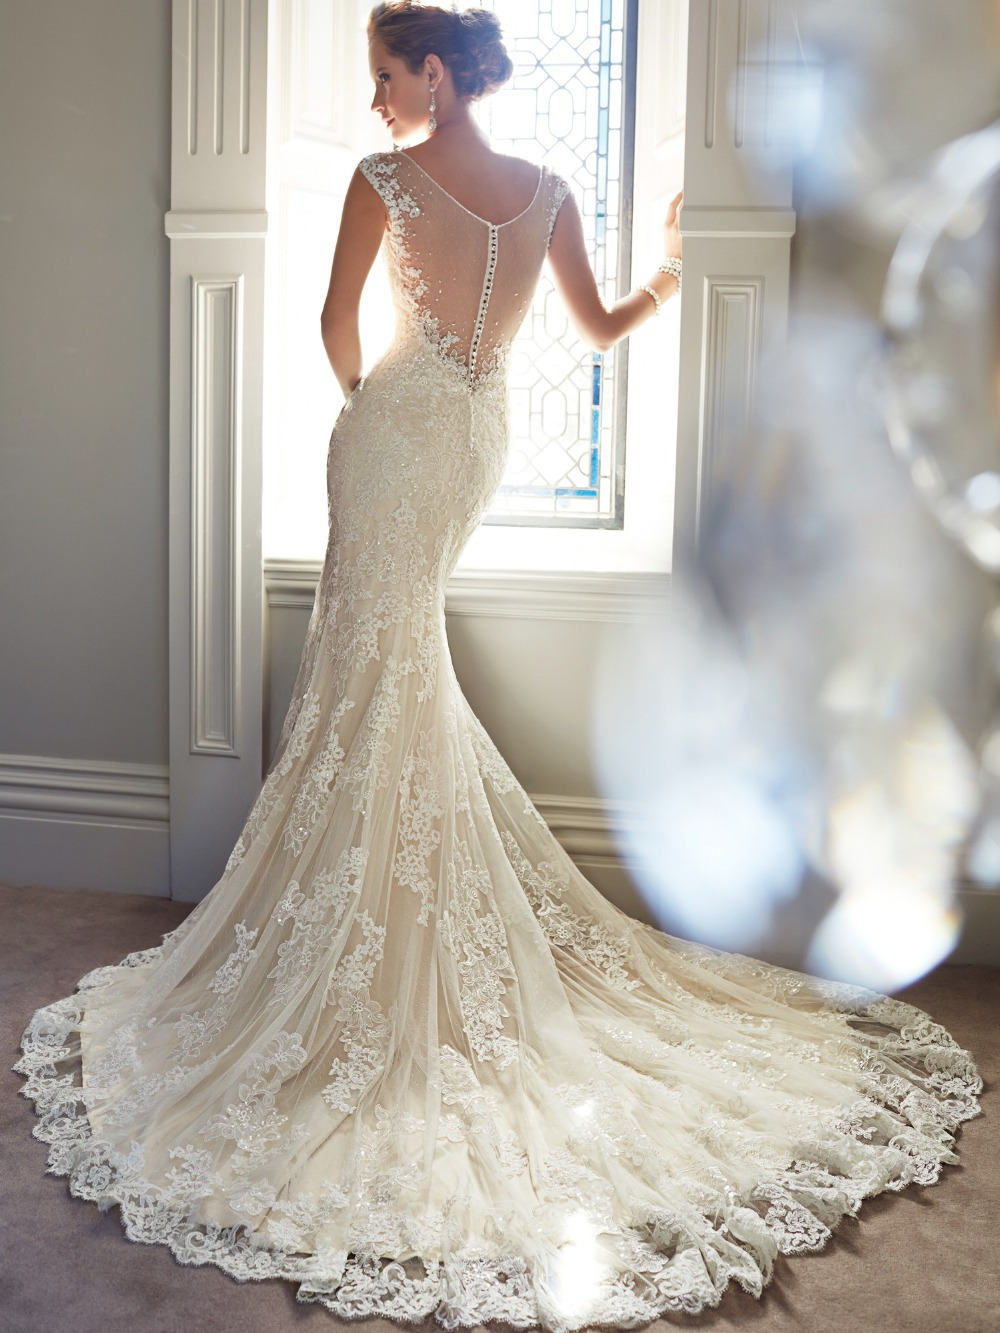 Lace Mermaid Wedding Dress with Sheer